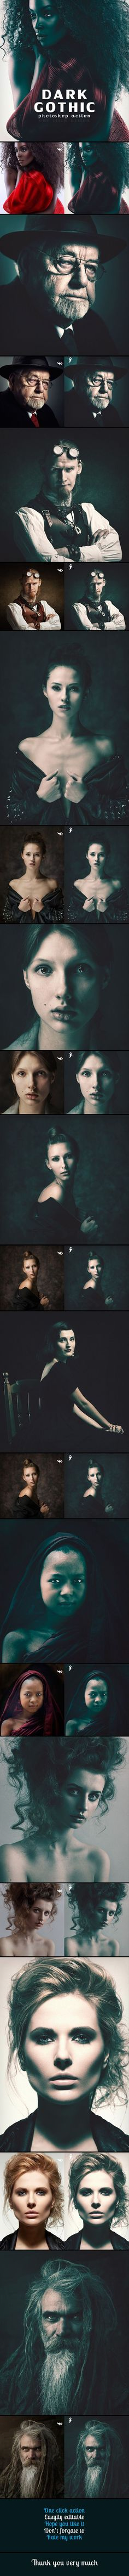 Dark Gothic Photoshop Action #photoeffect Download: graphicriver.net/...